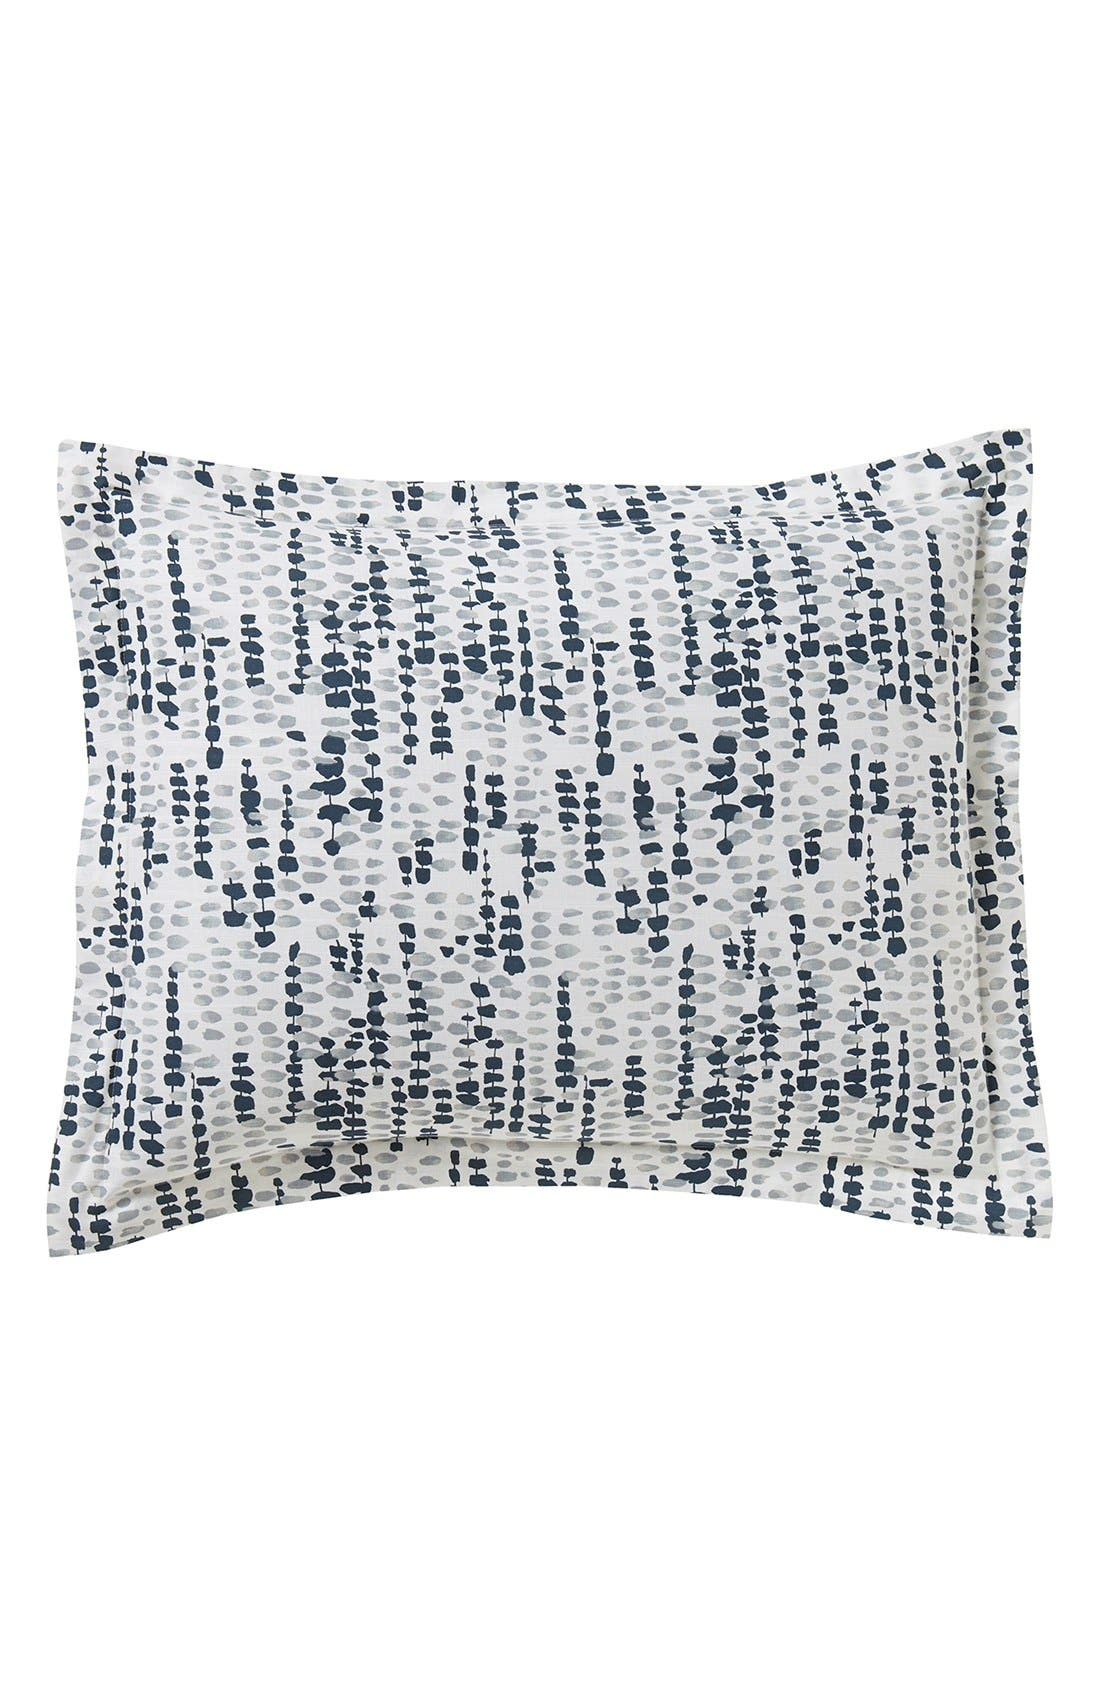 Alternate Image 1 Selected - DwellStudio 'Lucienne' Shams (Set of 2)